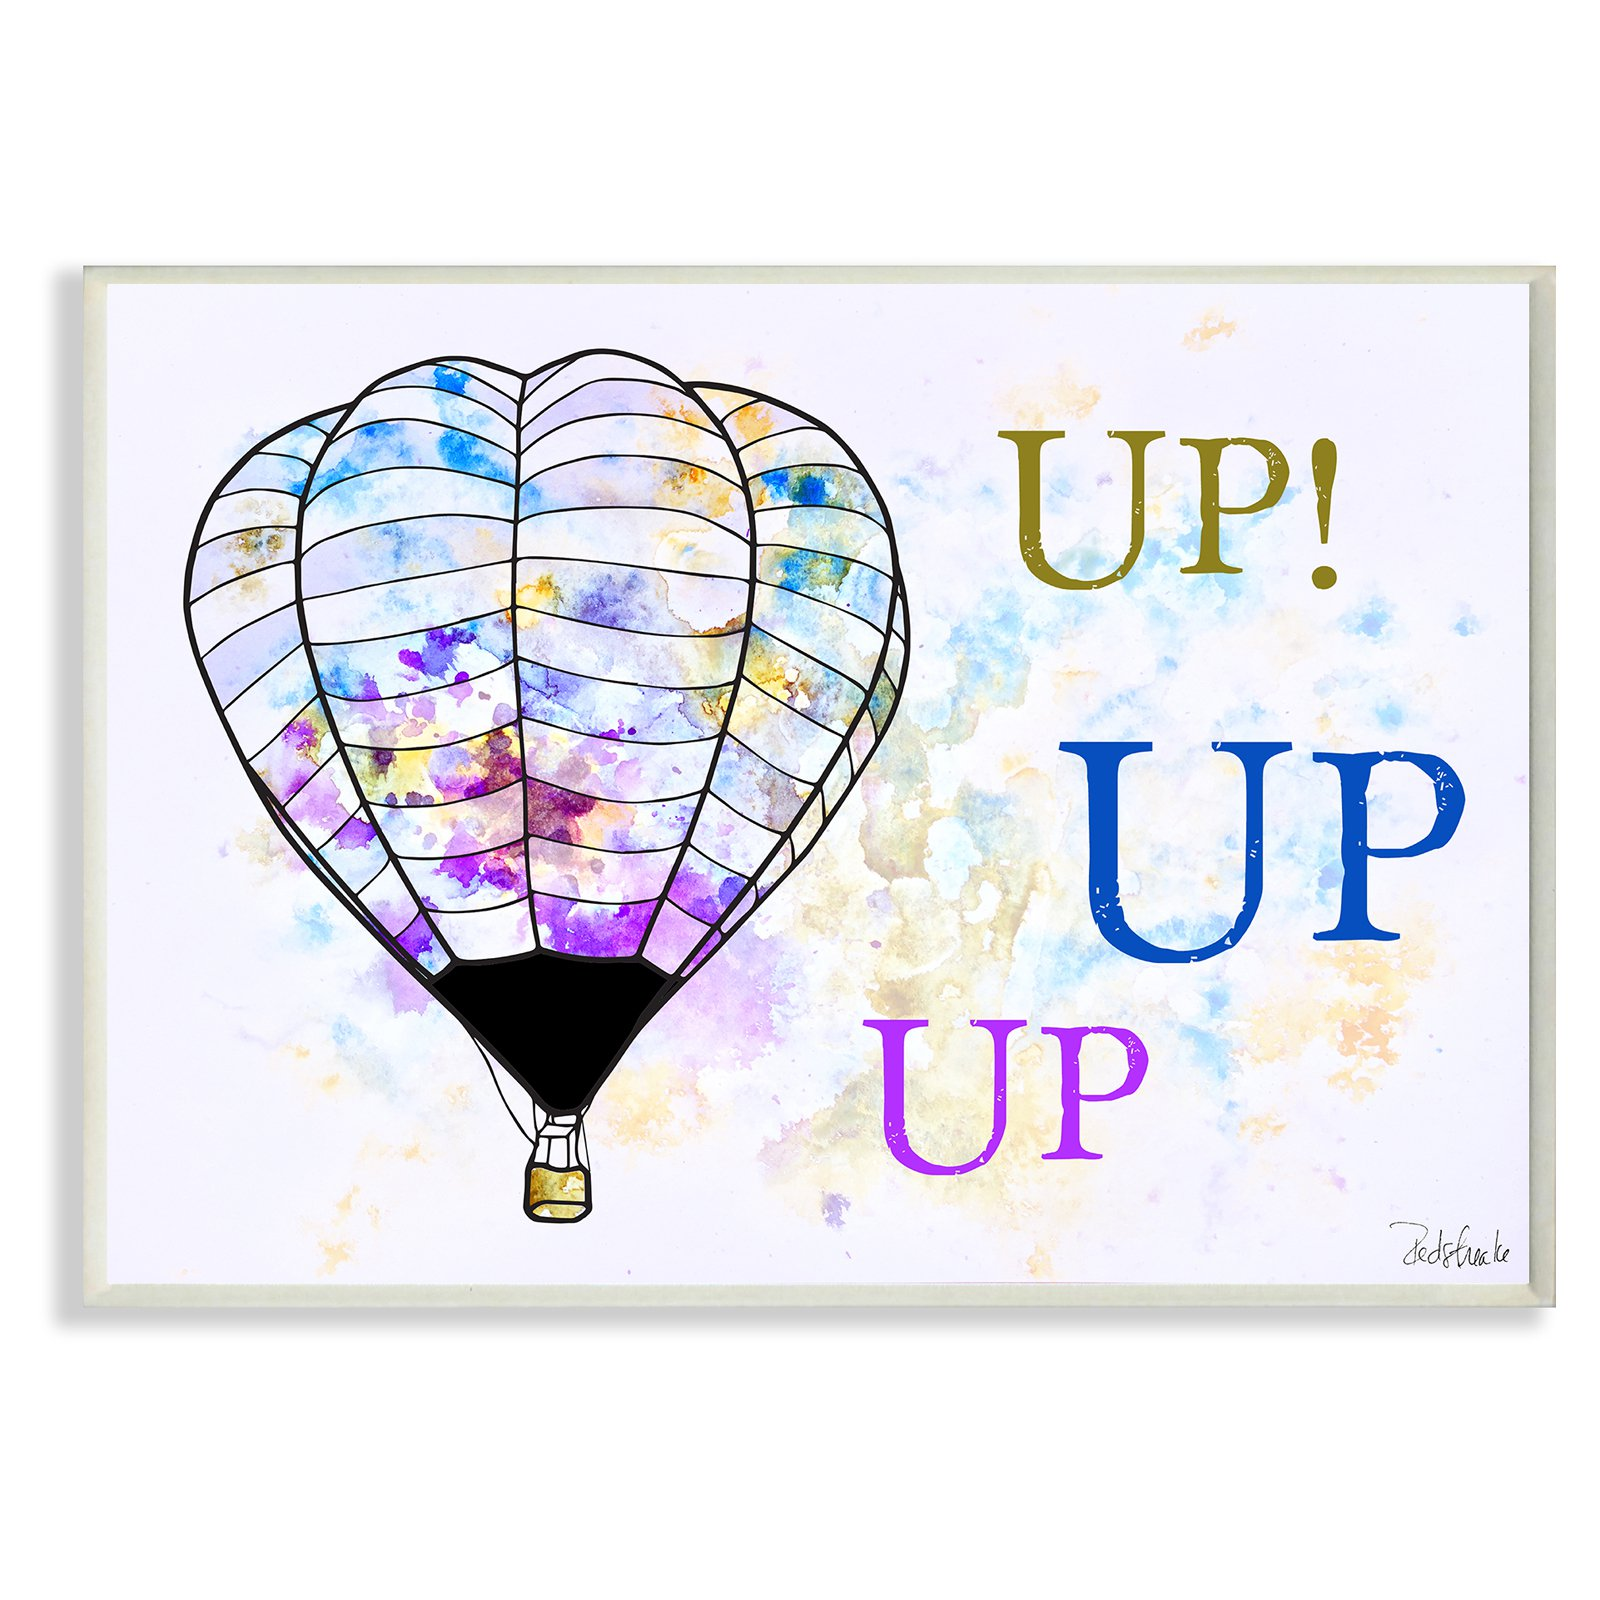 The Stupell Home Decor Collection Up Up Up Hot Air Balloons Wall Plaque Art